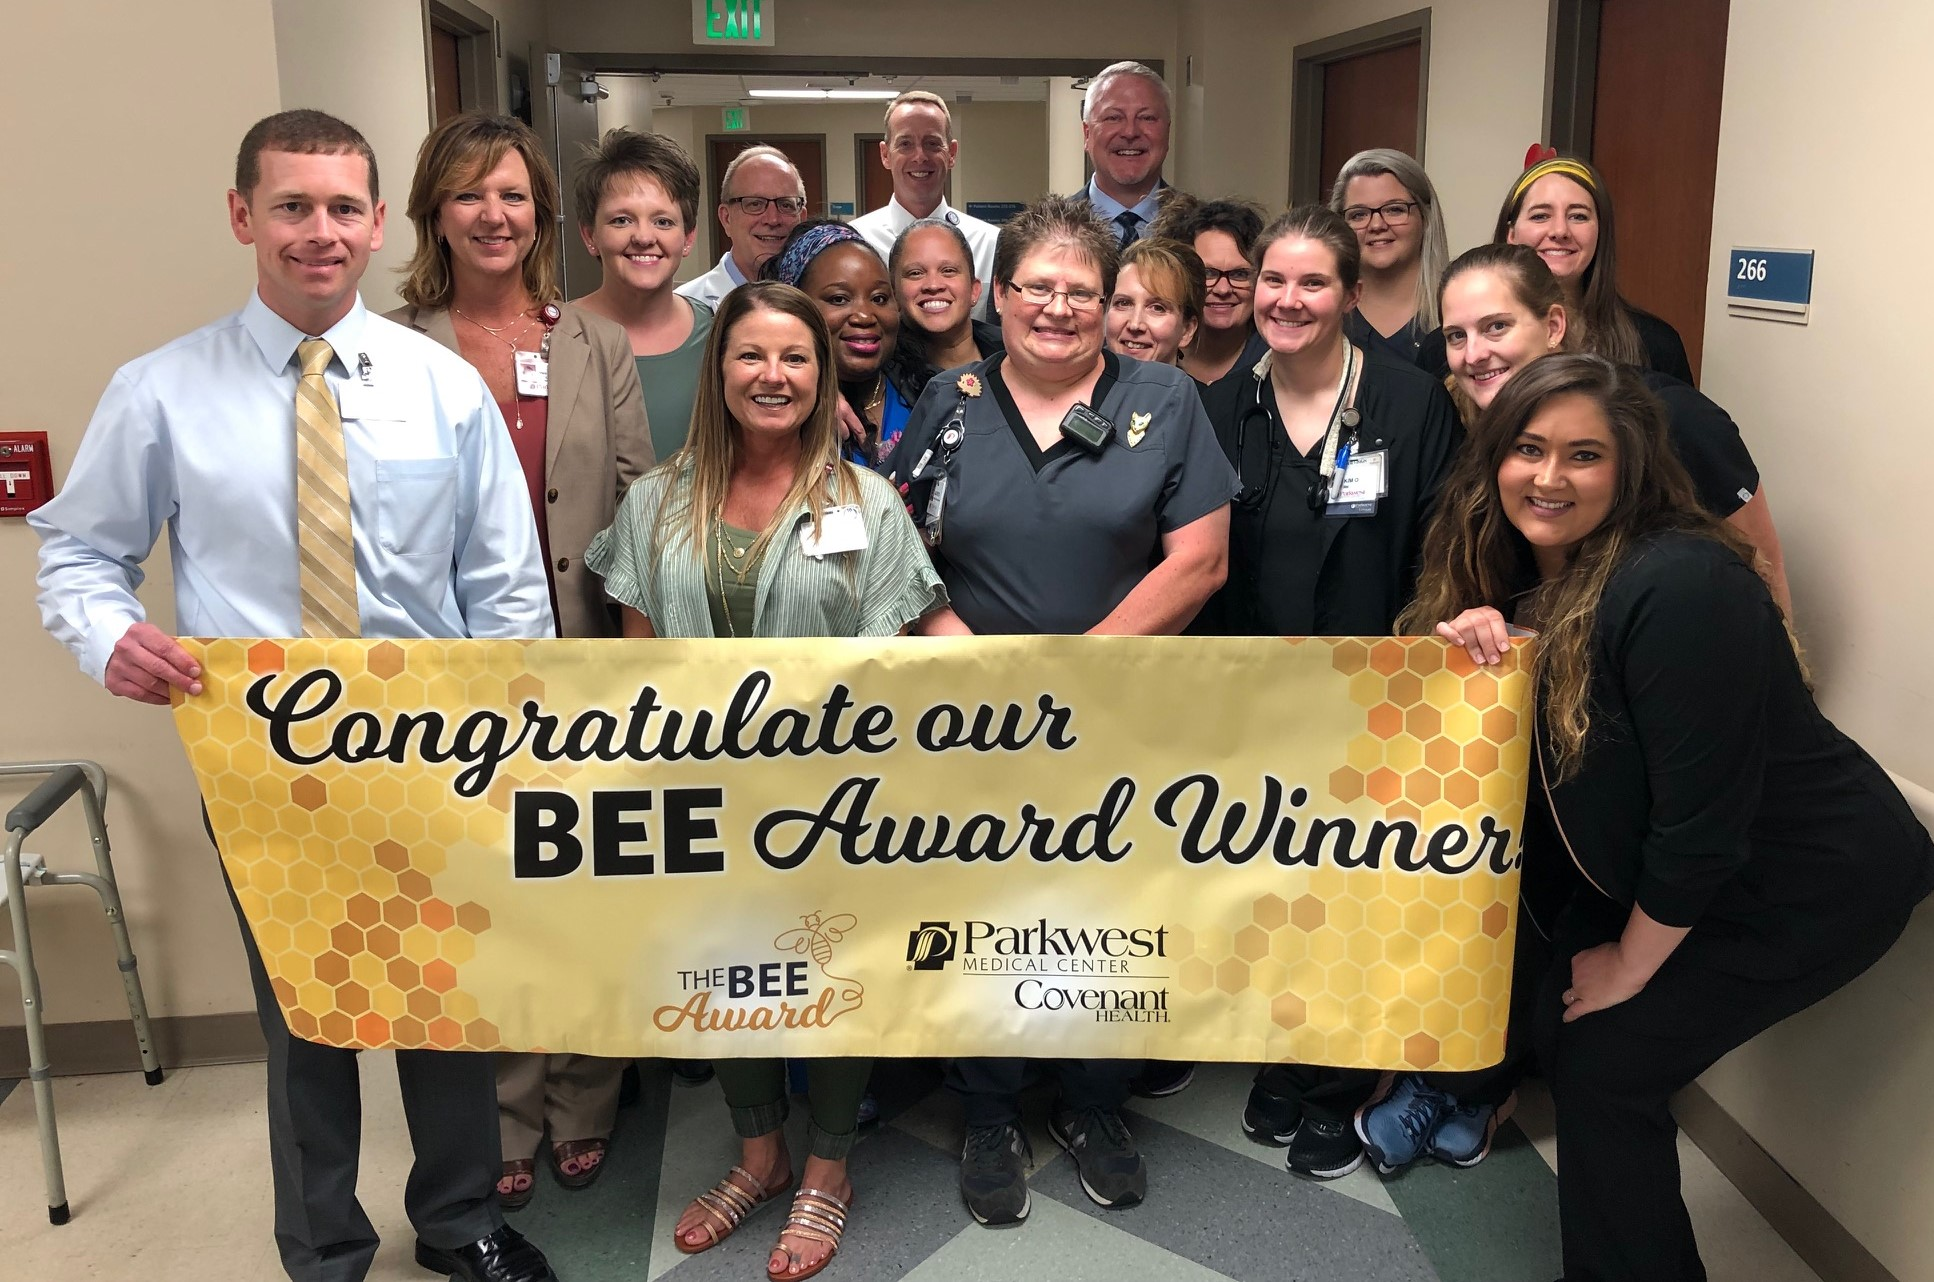 BEE Award committee and 2M staff congratulating Laurie Davis on her BEE award.